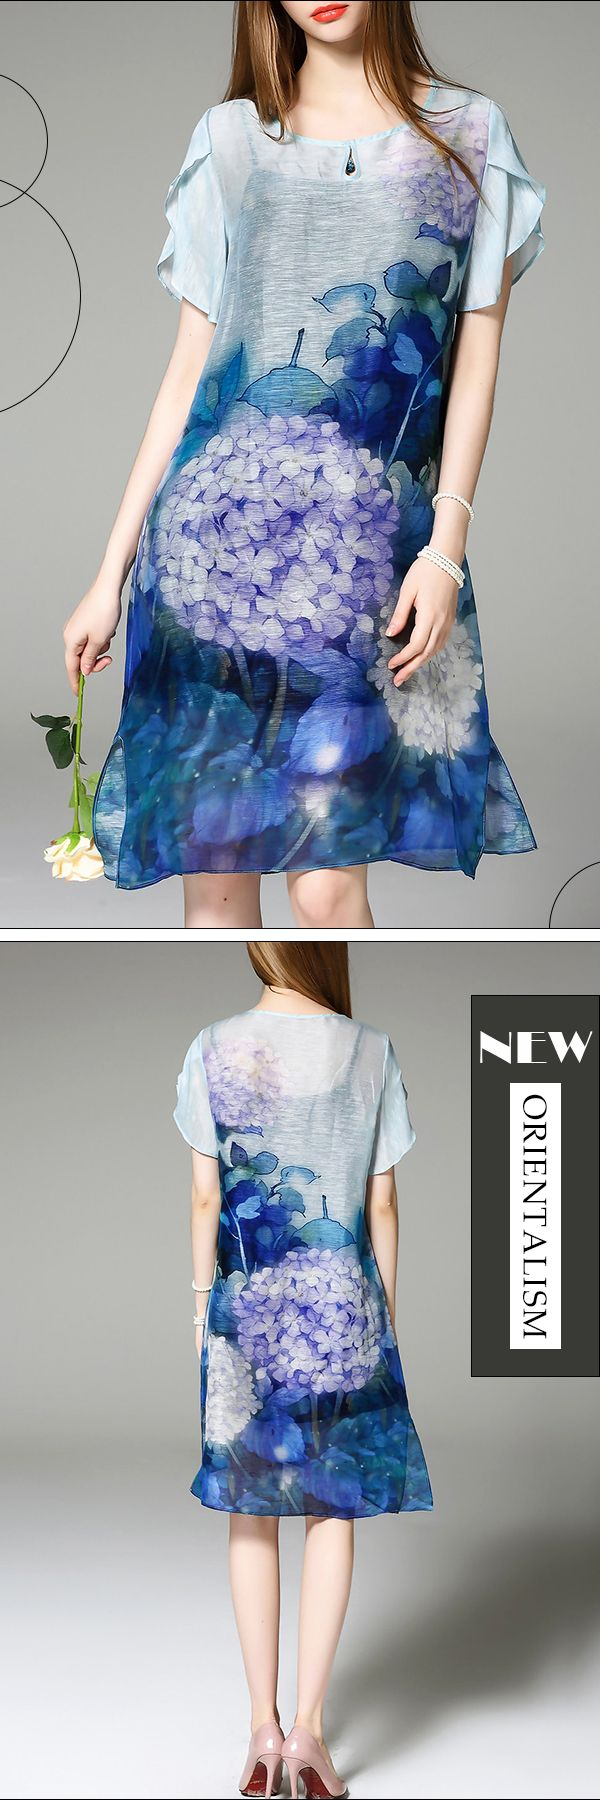 Let Life Be Beautiful Like Summer Flowers. Got This Stunning Dress and Visit VIPme.com